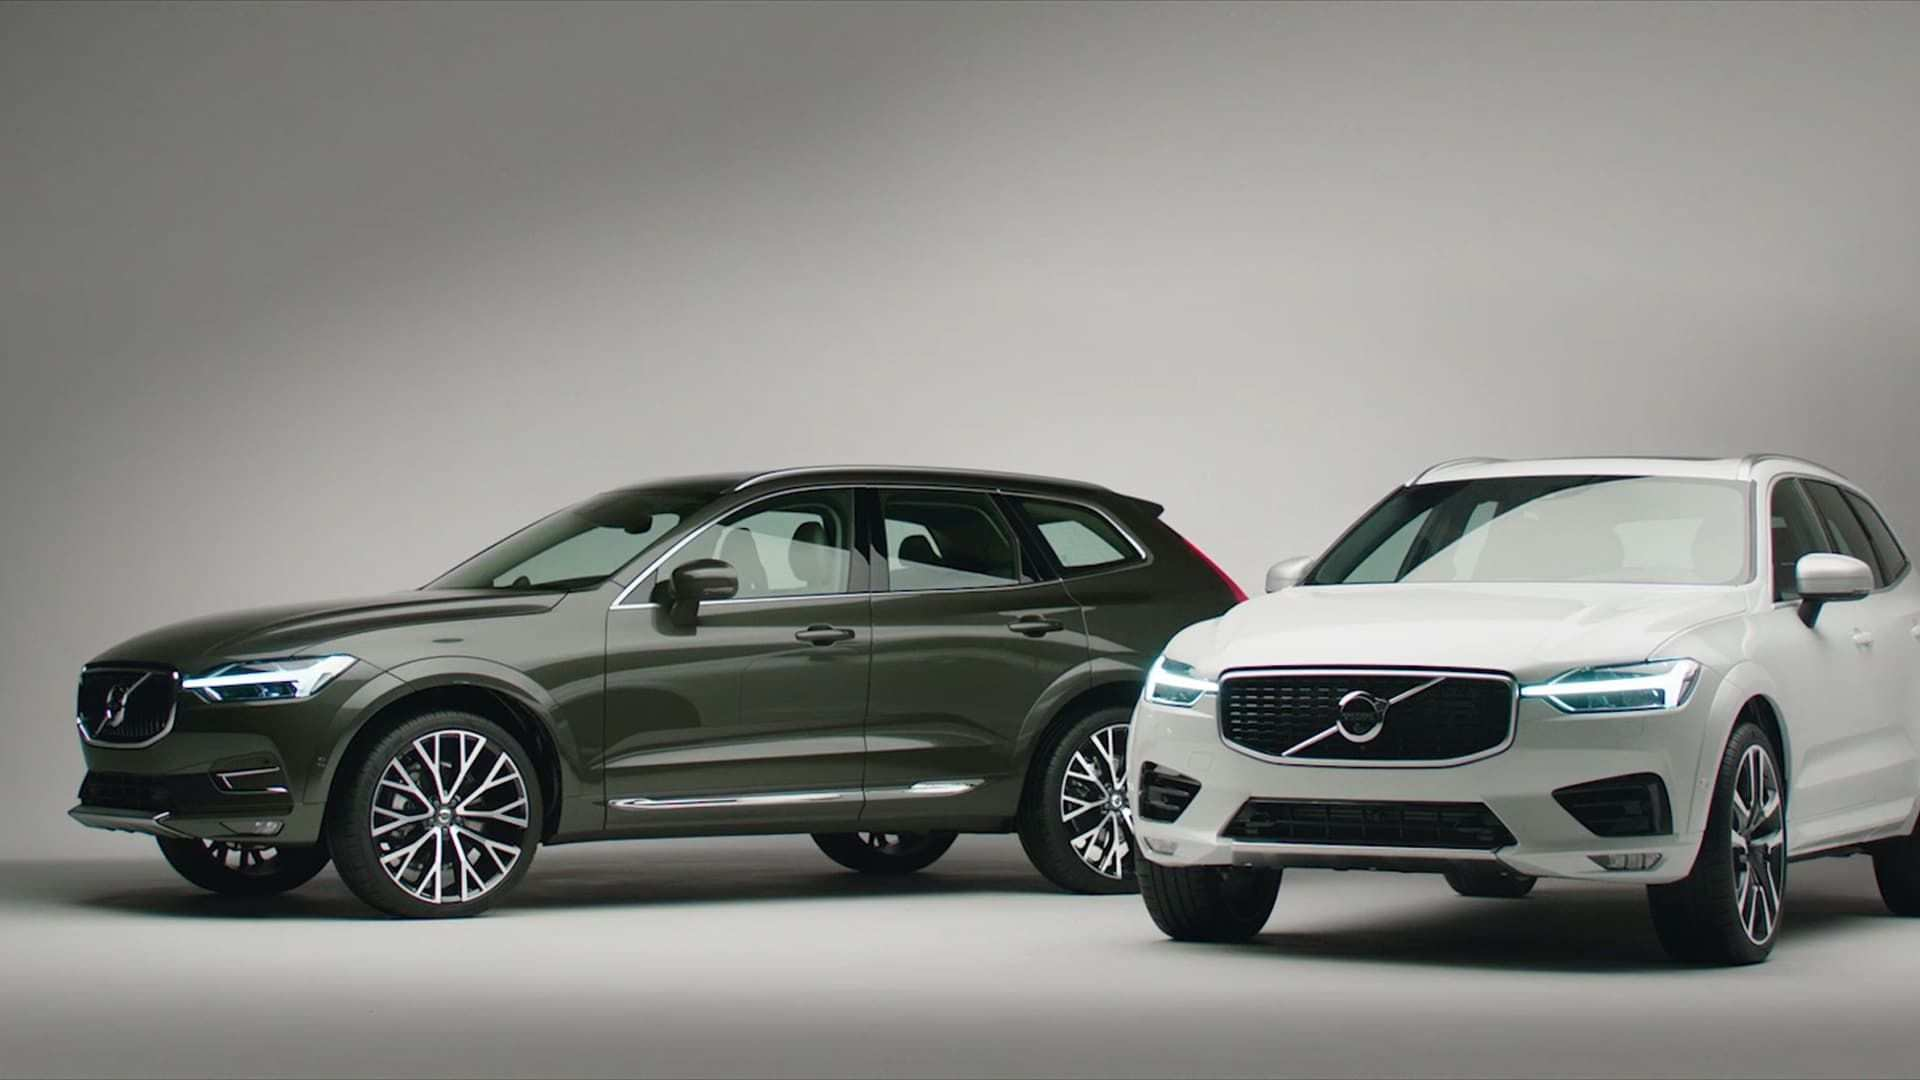 80 Best Volvo Car Open 2020 Images